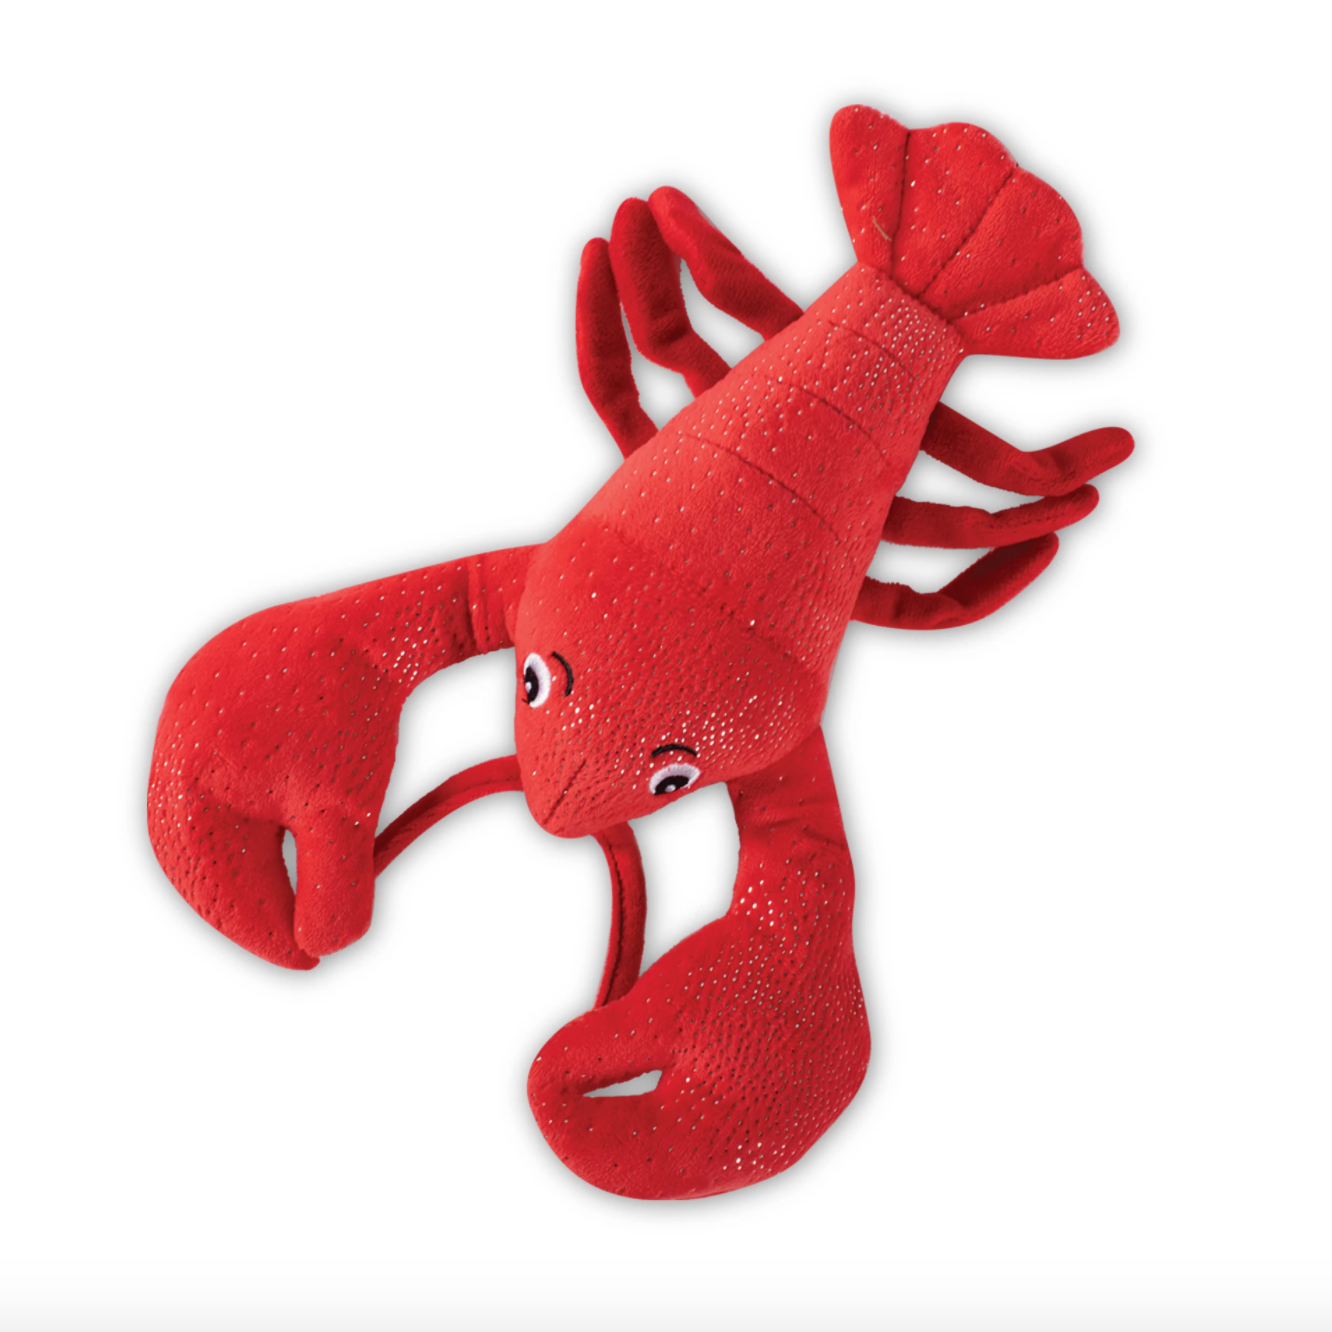 Dog Toy - Plush Lobster